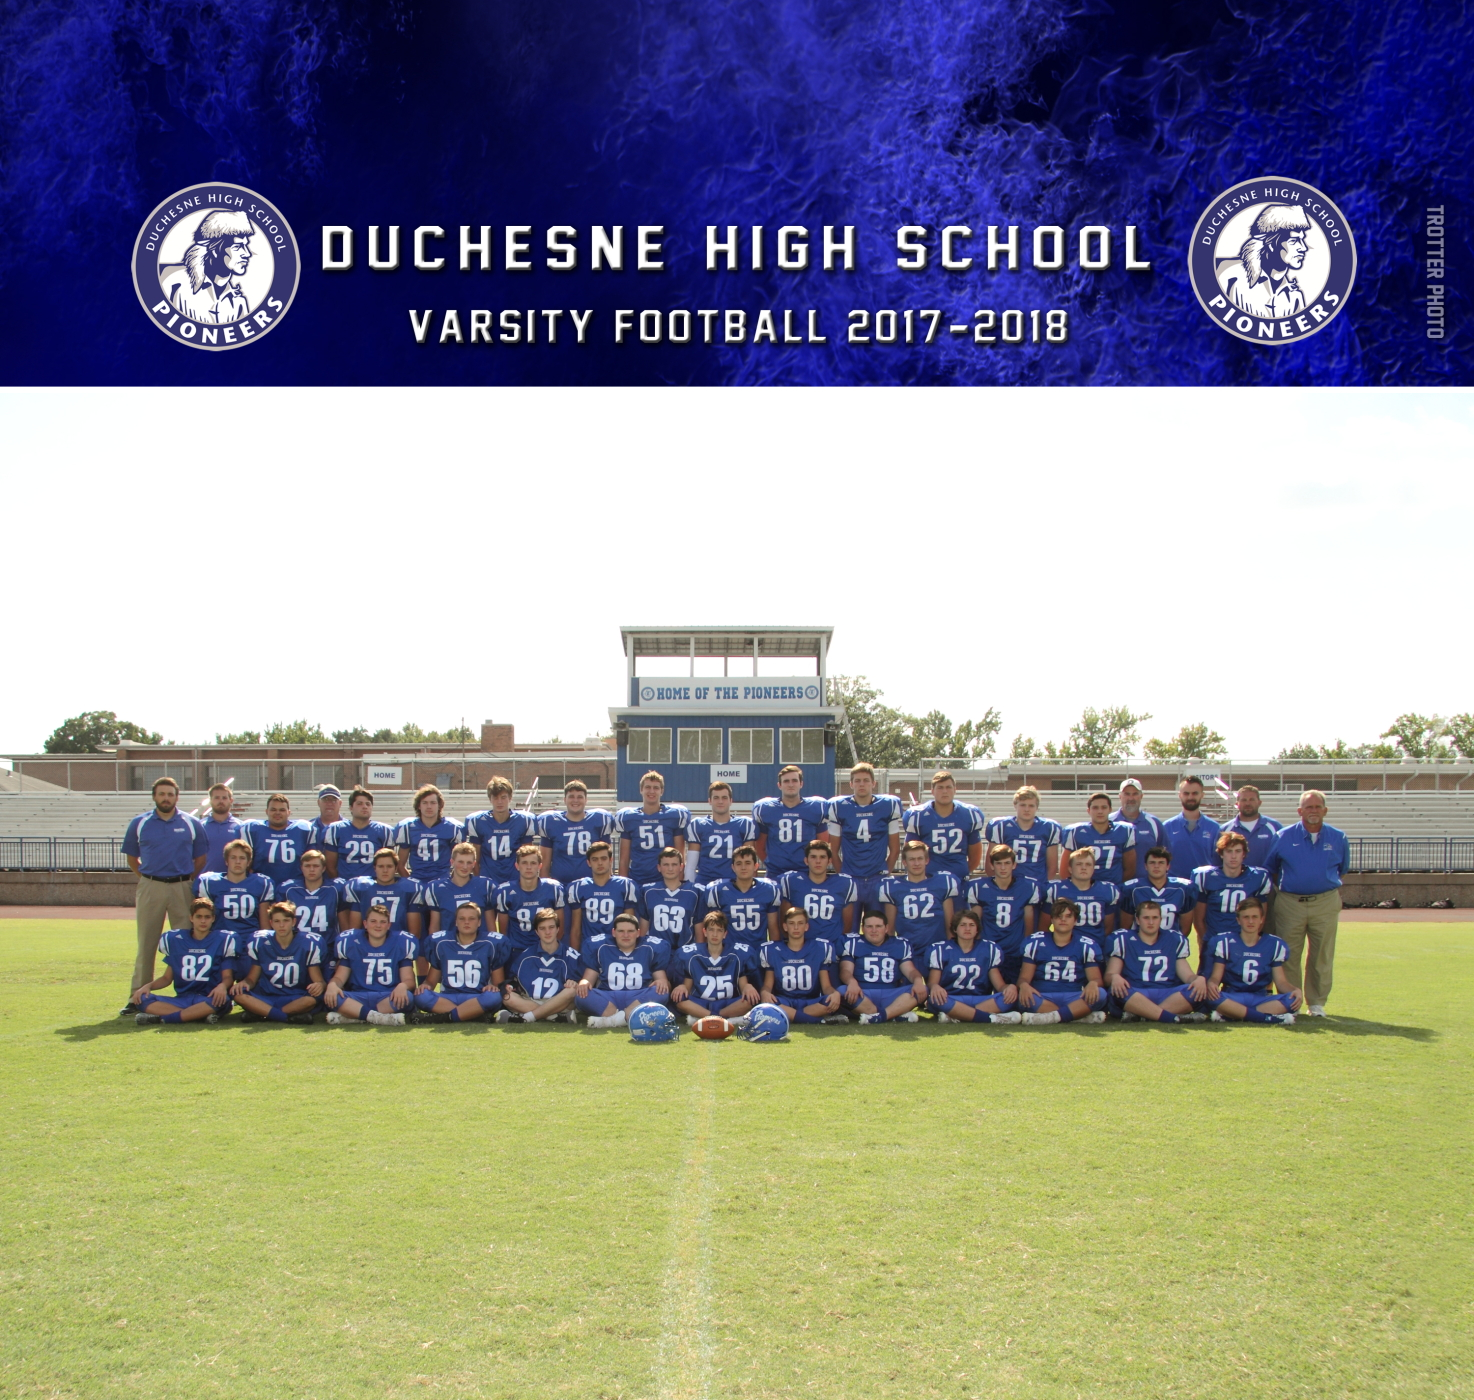 Duchesne High School House Raffle Duchesne High School Football Team